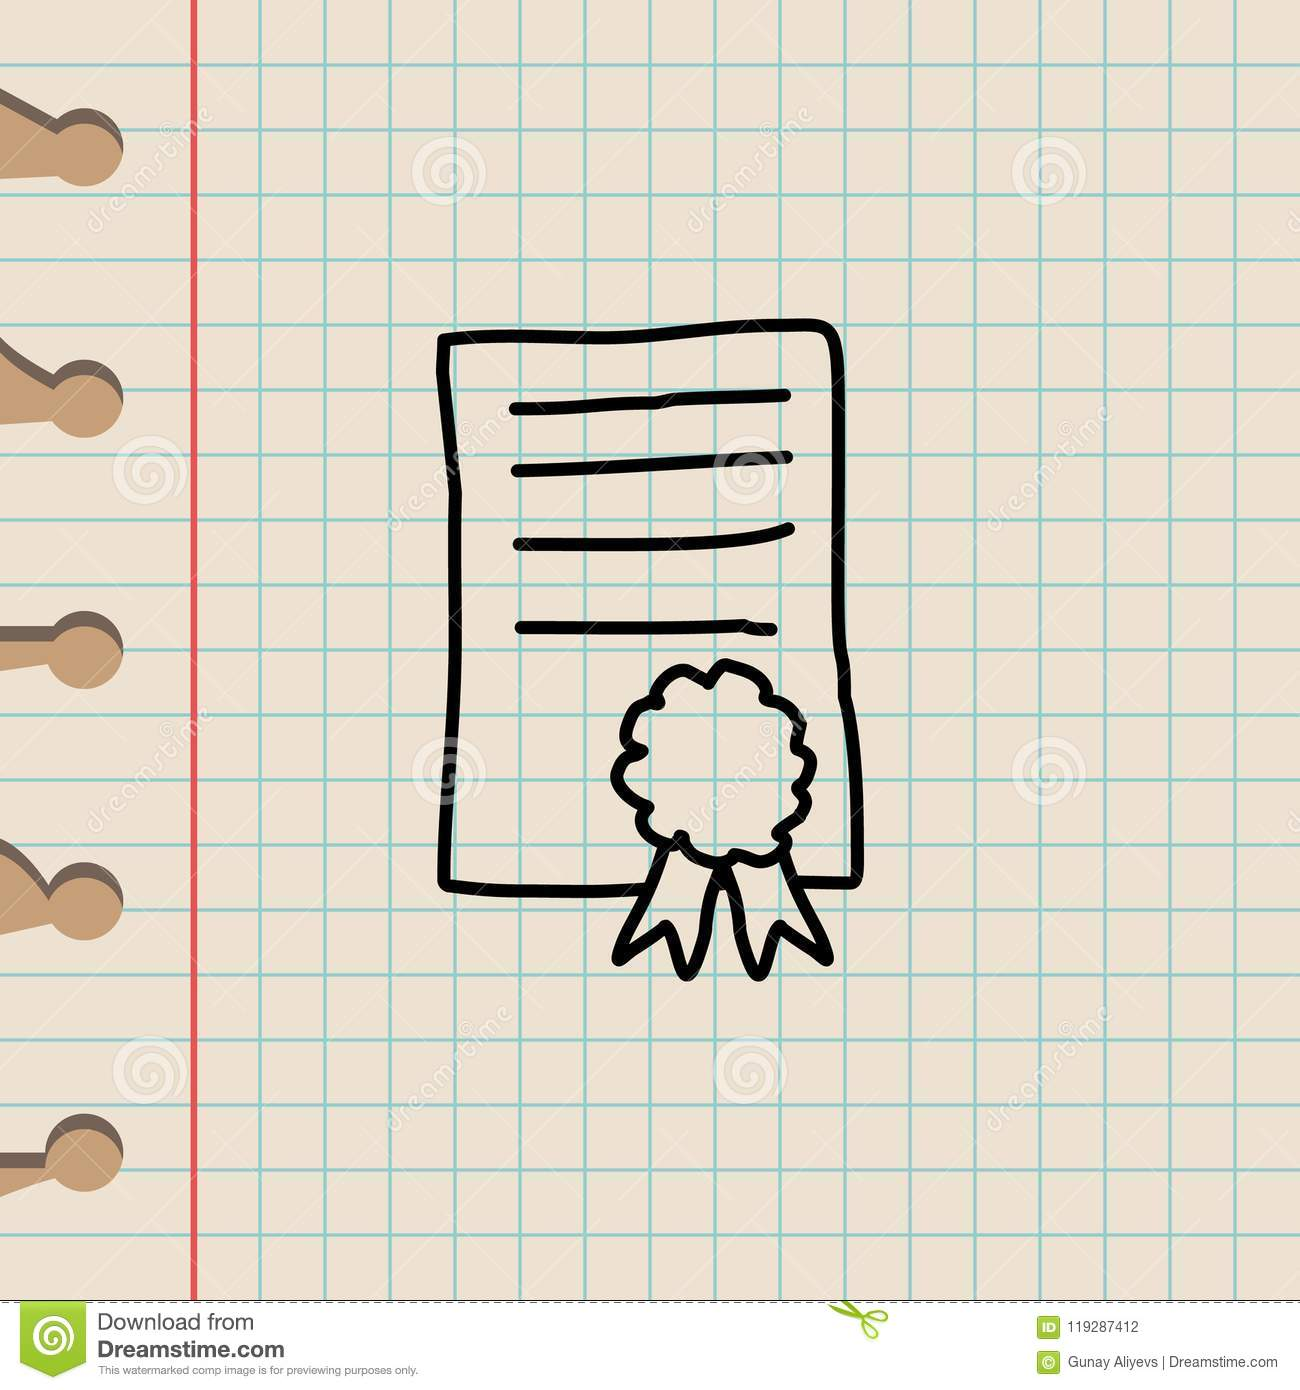 certificate sketch icon element of education icon for mobile